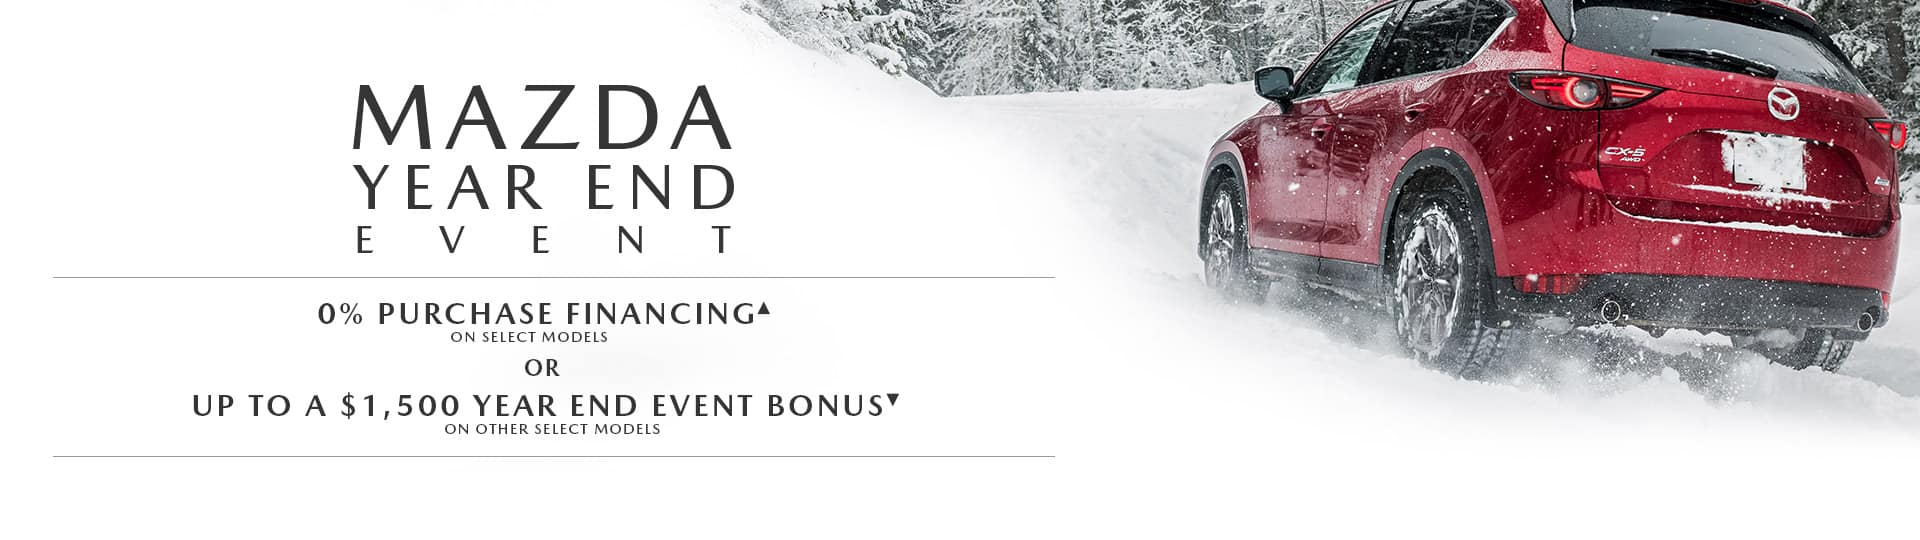 The Mazda Year End Event